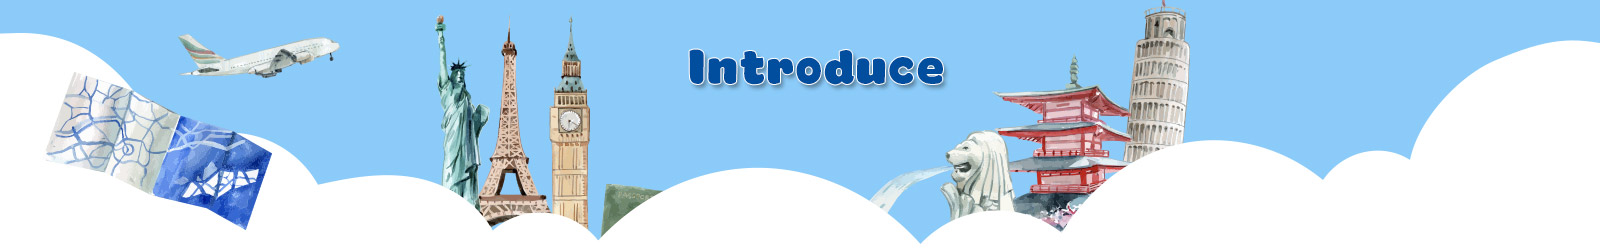 banner-Introduce